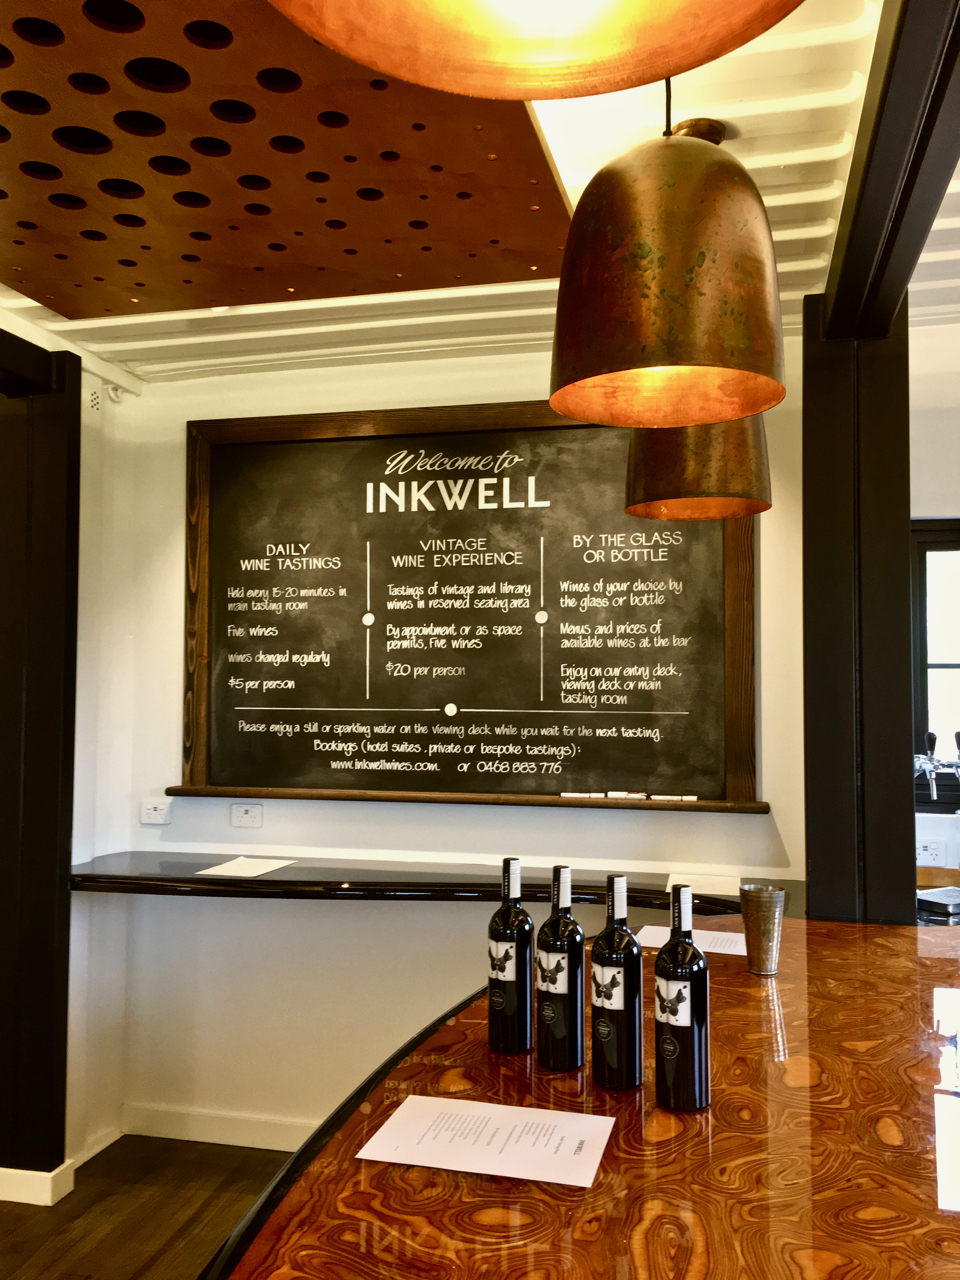 Inkwell Wines cellar door tasting rooms